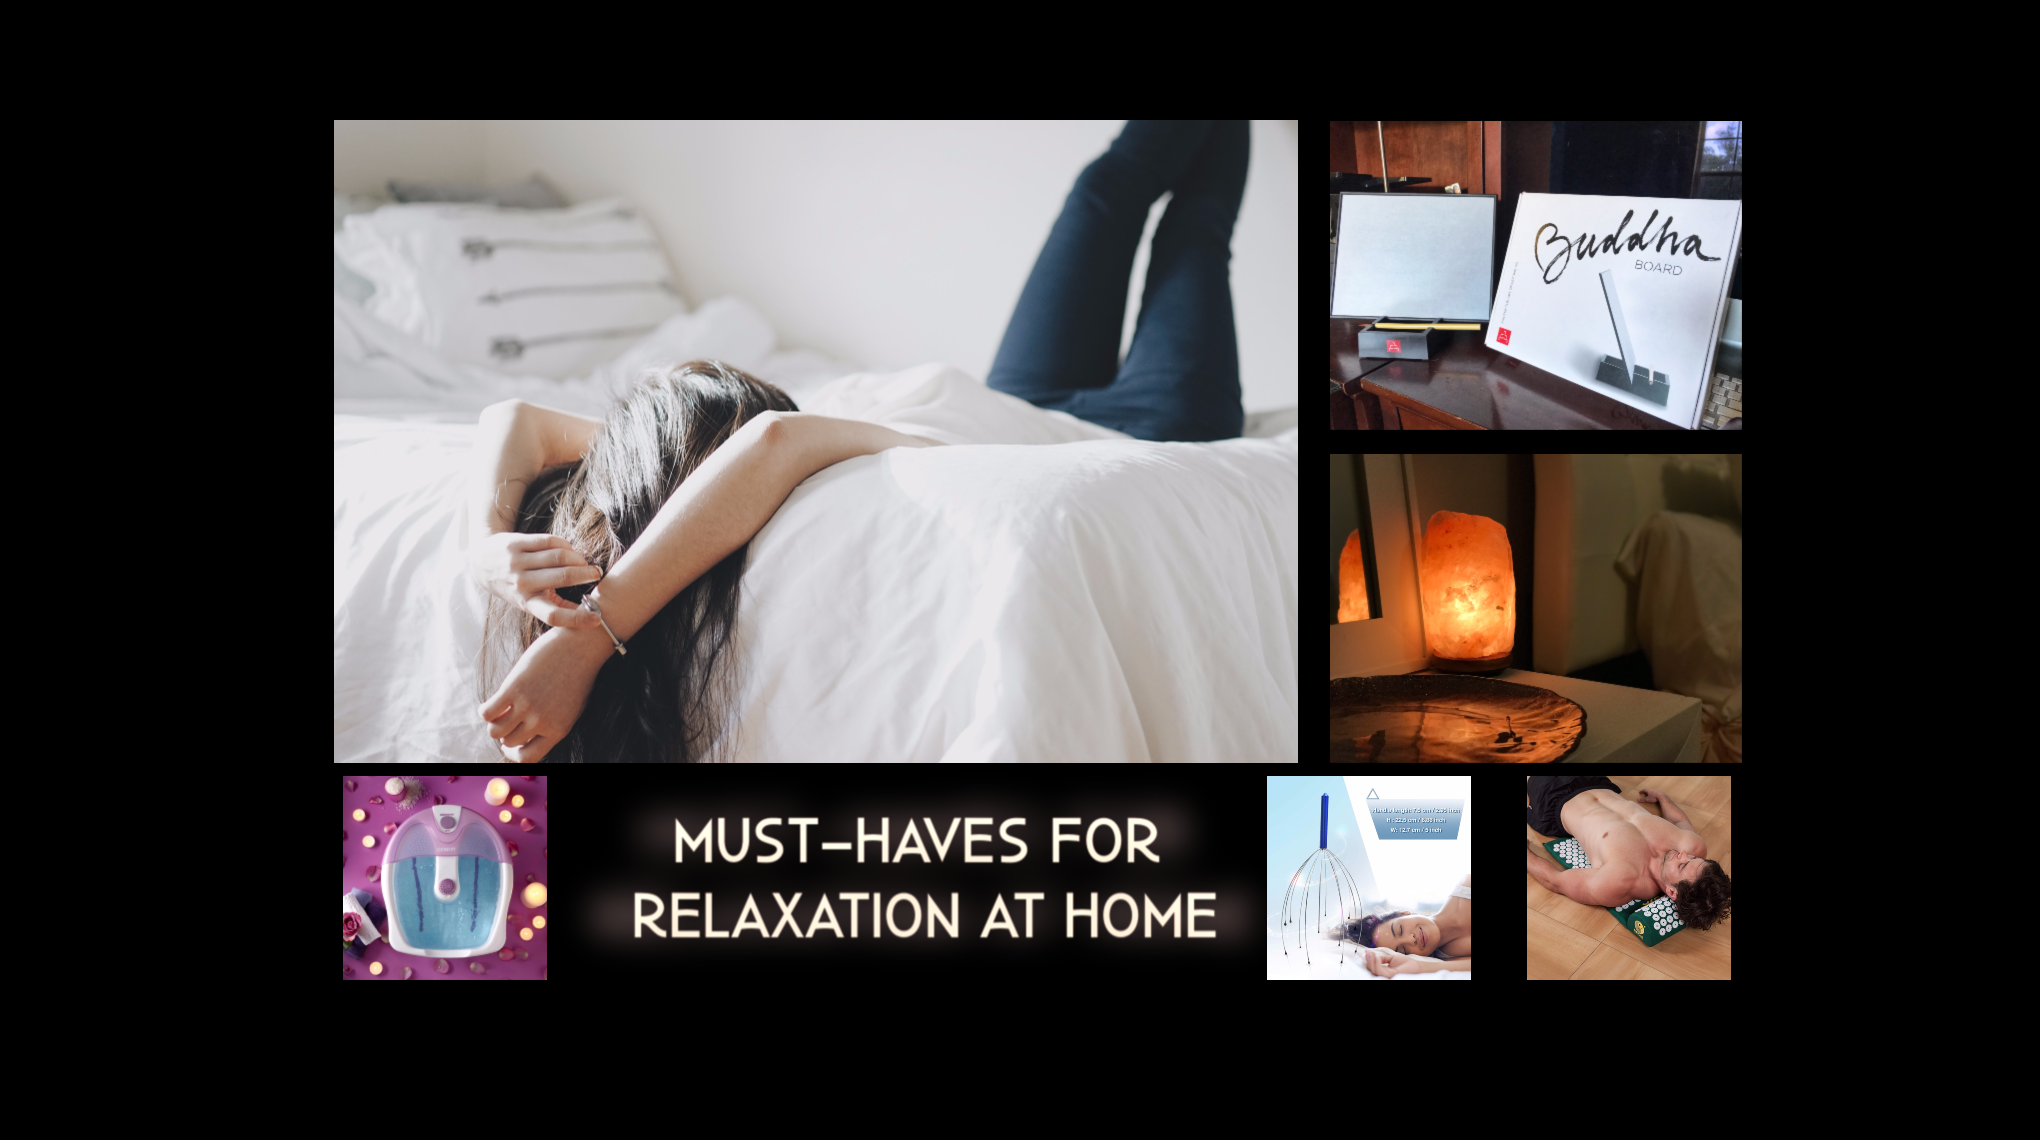 Must-Haves for Relaxation at Home